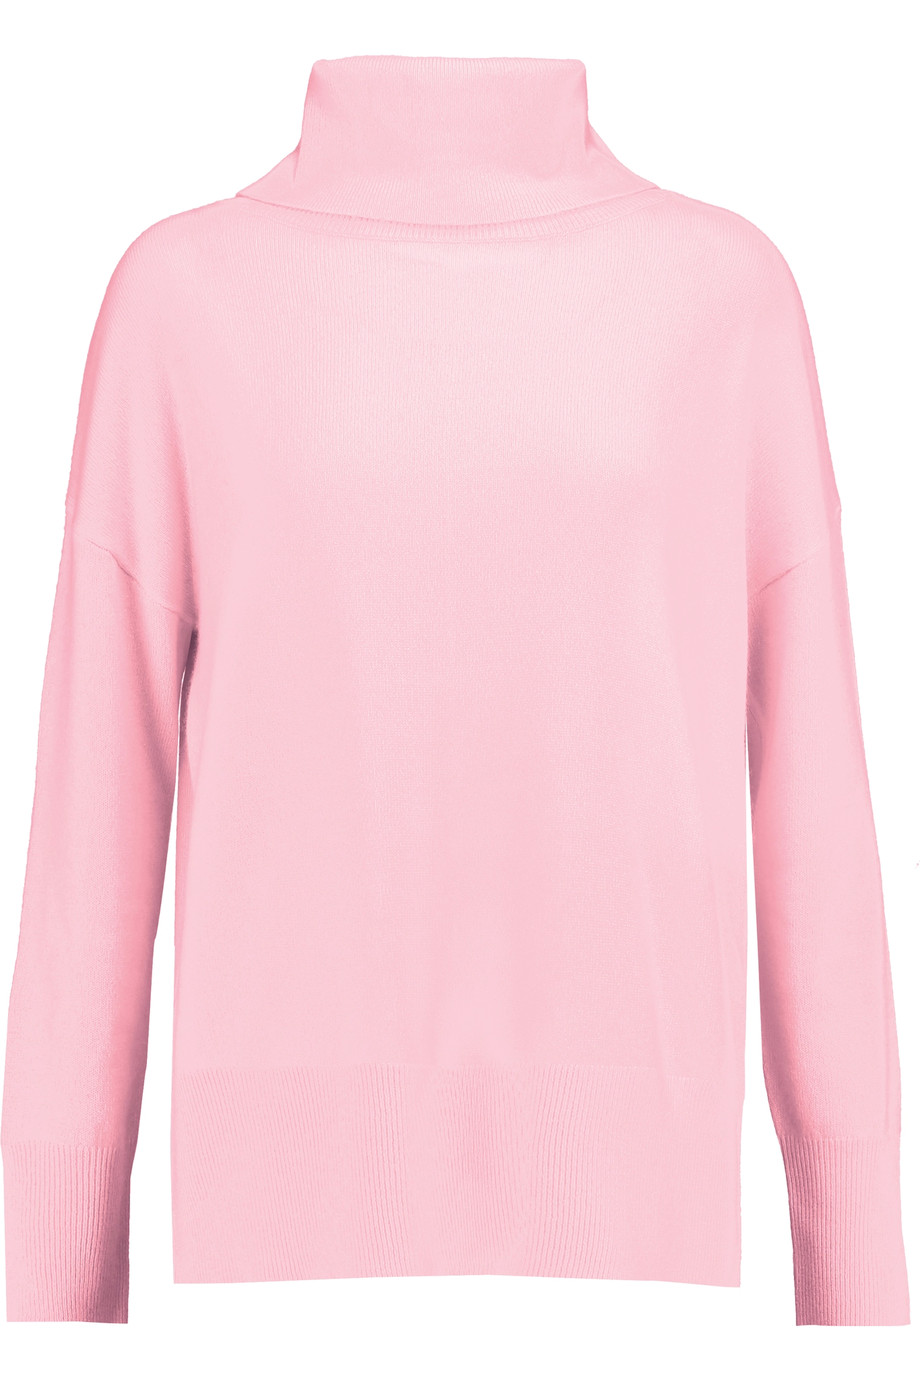 Iris & Ink Grace Sweater in Pink